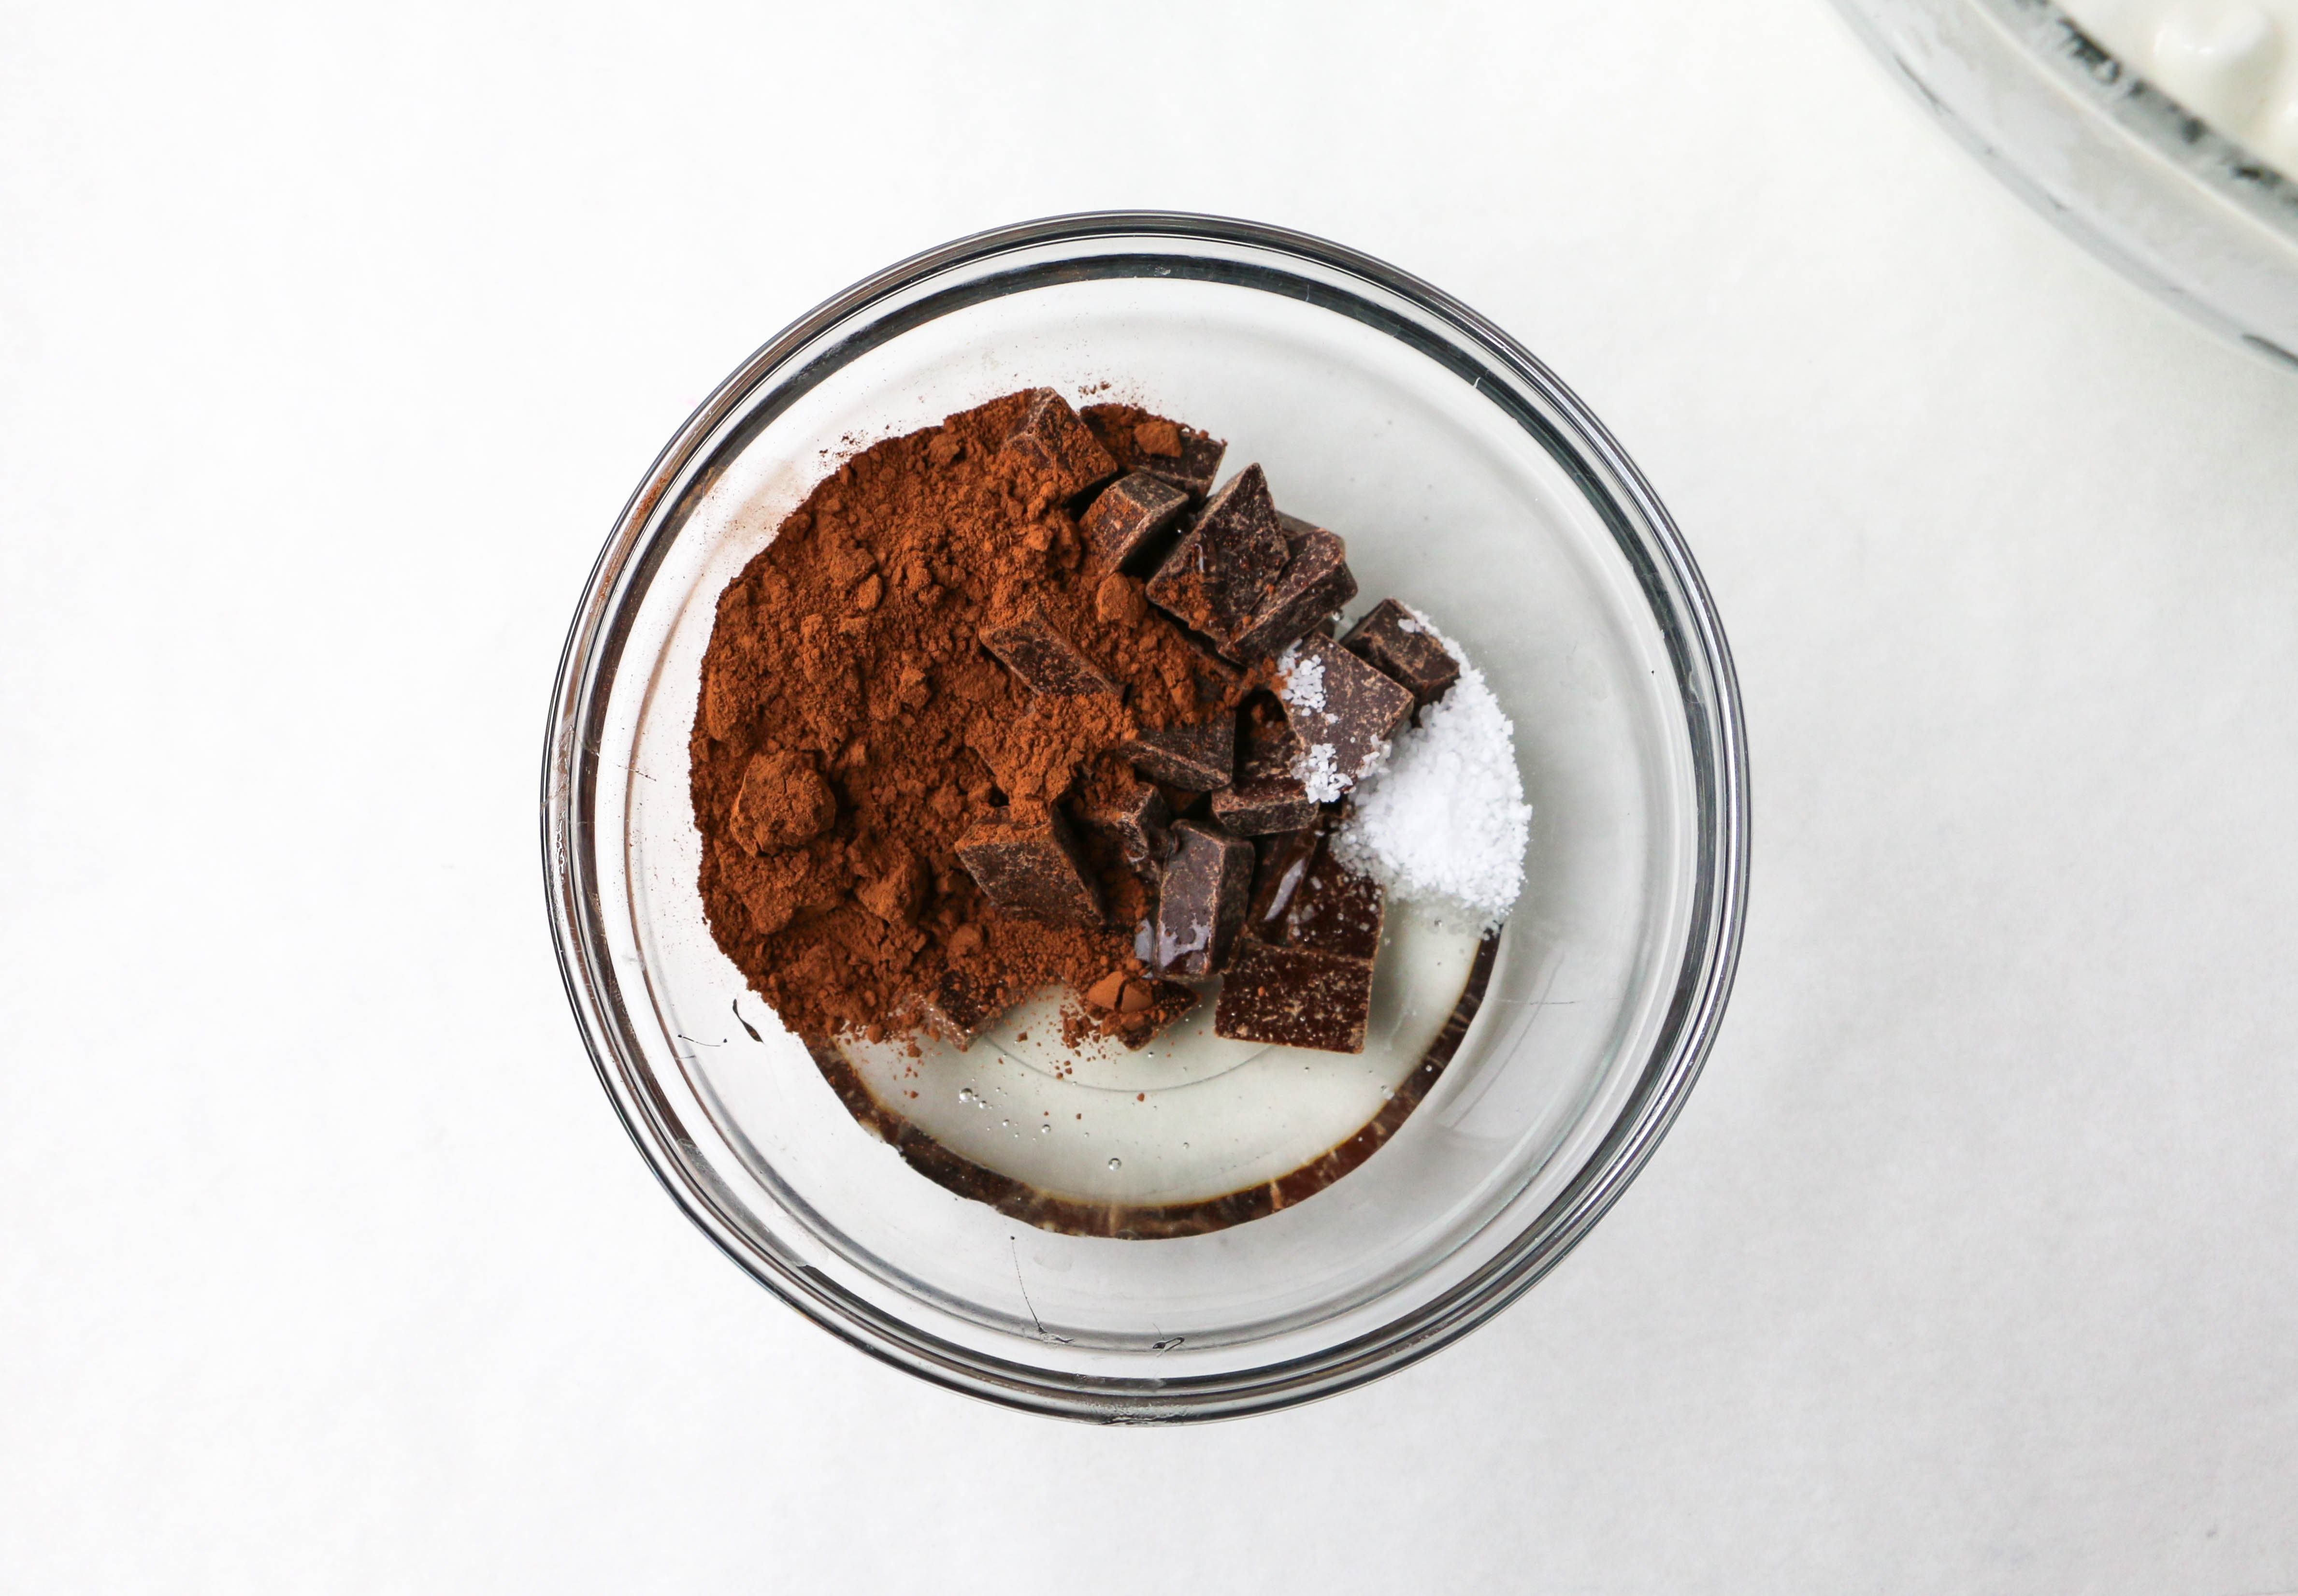 Combining chocolate, cocoa powder, salt, and corn syrup | Erin Gardner